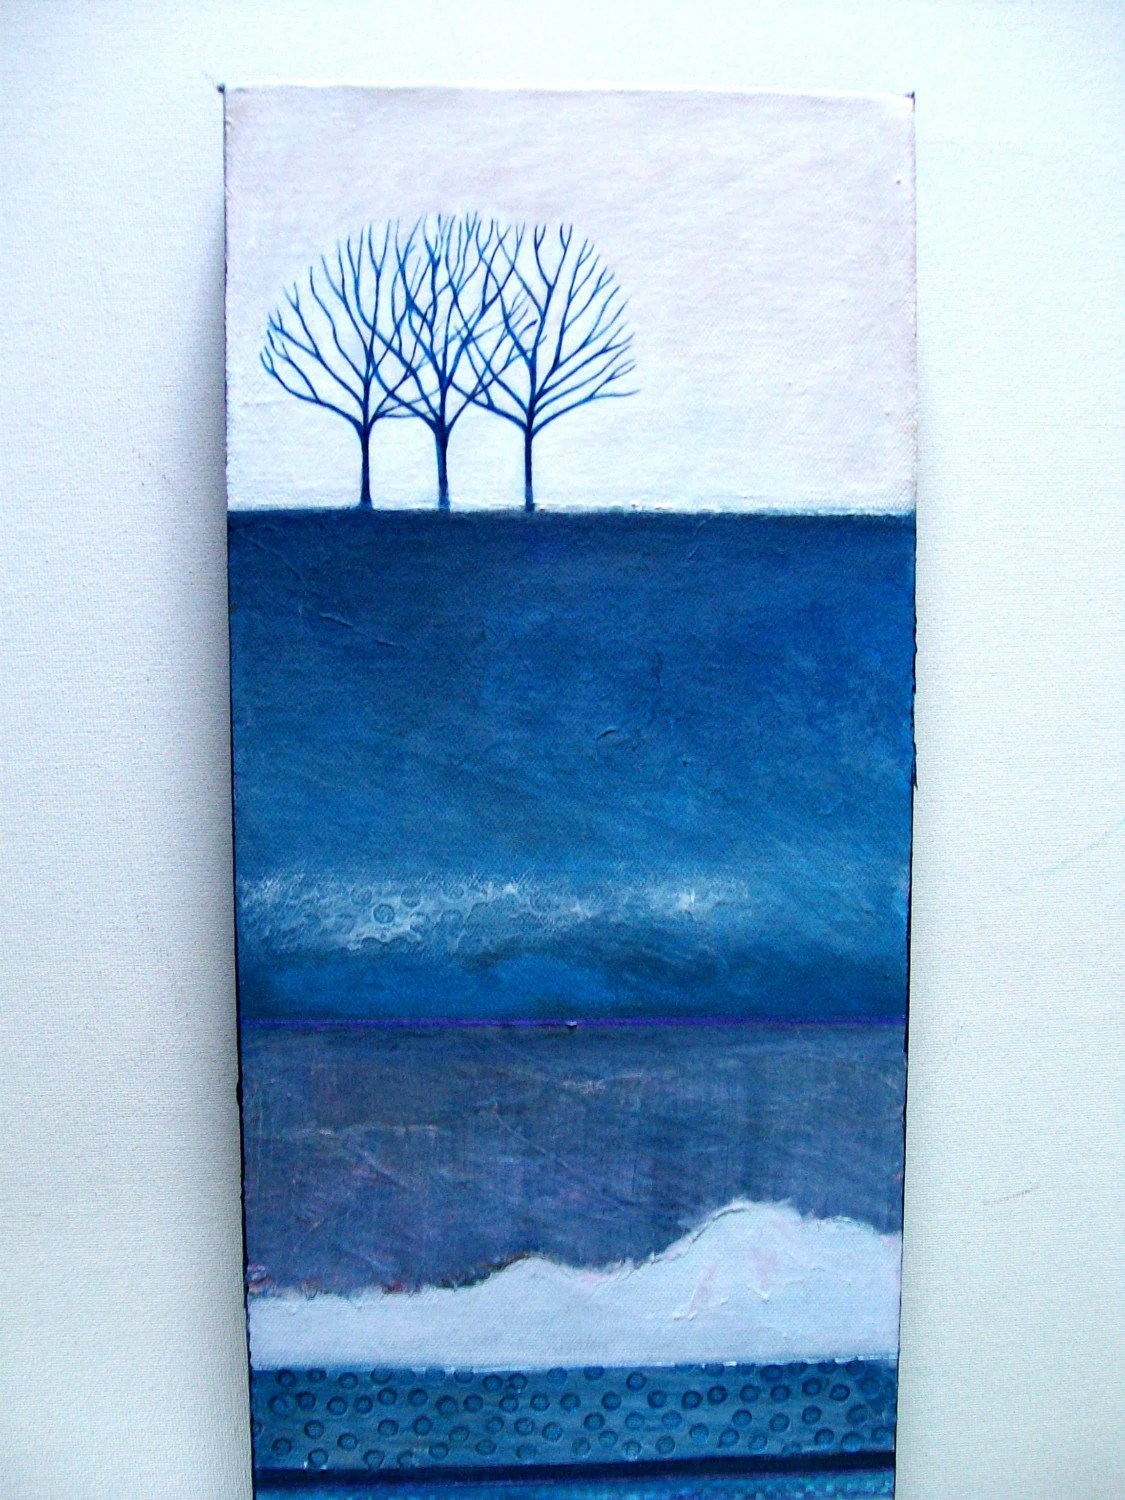 ON SALE - WinterScape - Original Mixed Media Painting on Canvas 24 x 8 x 1.5 inches